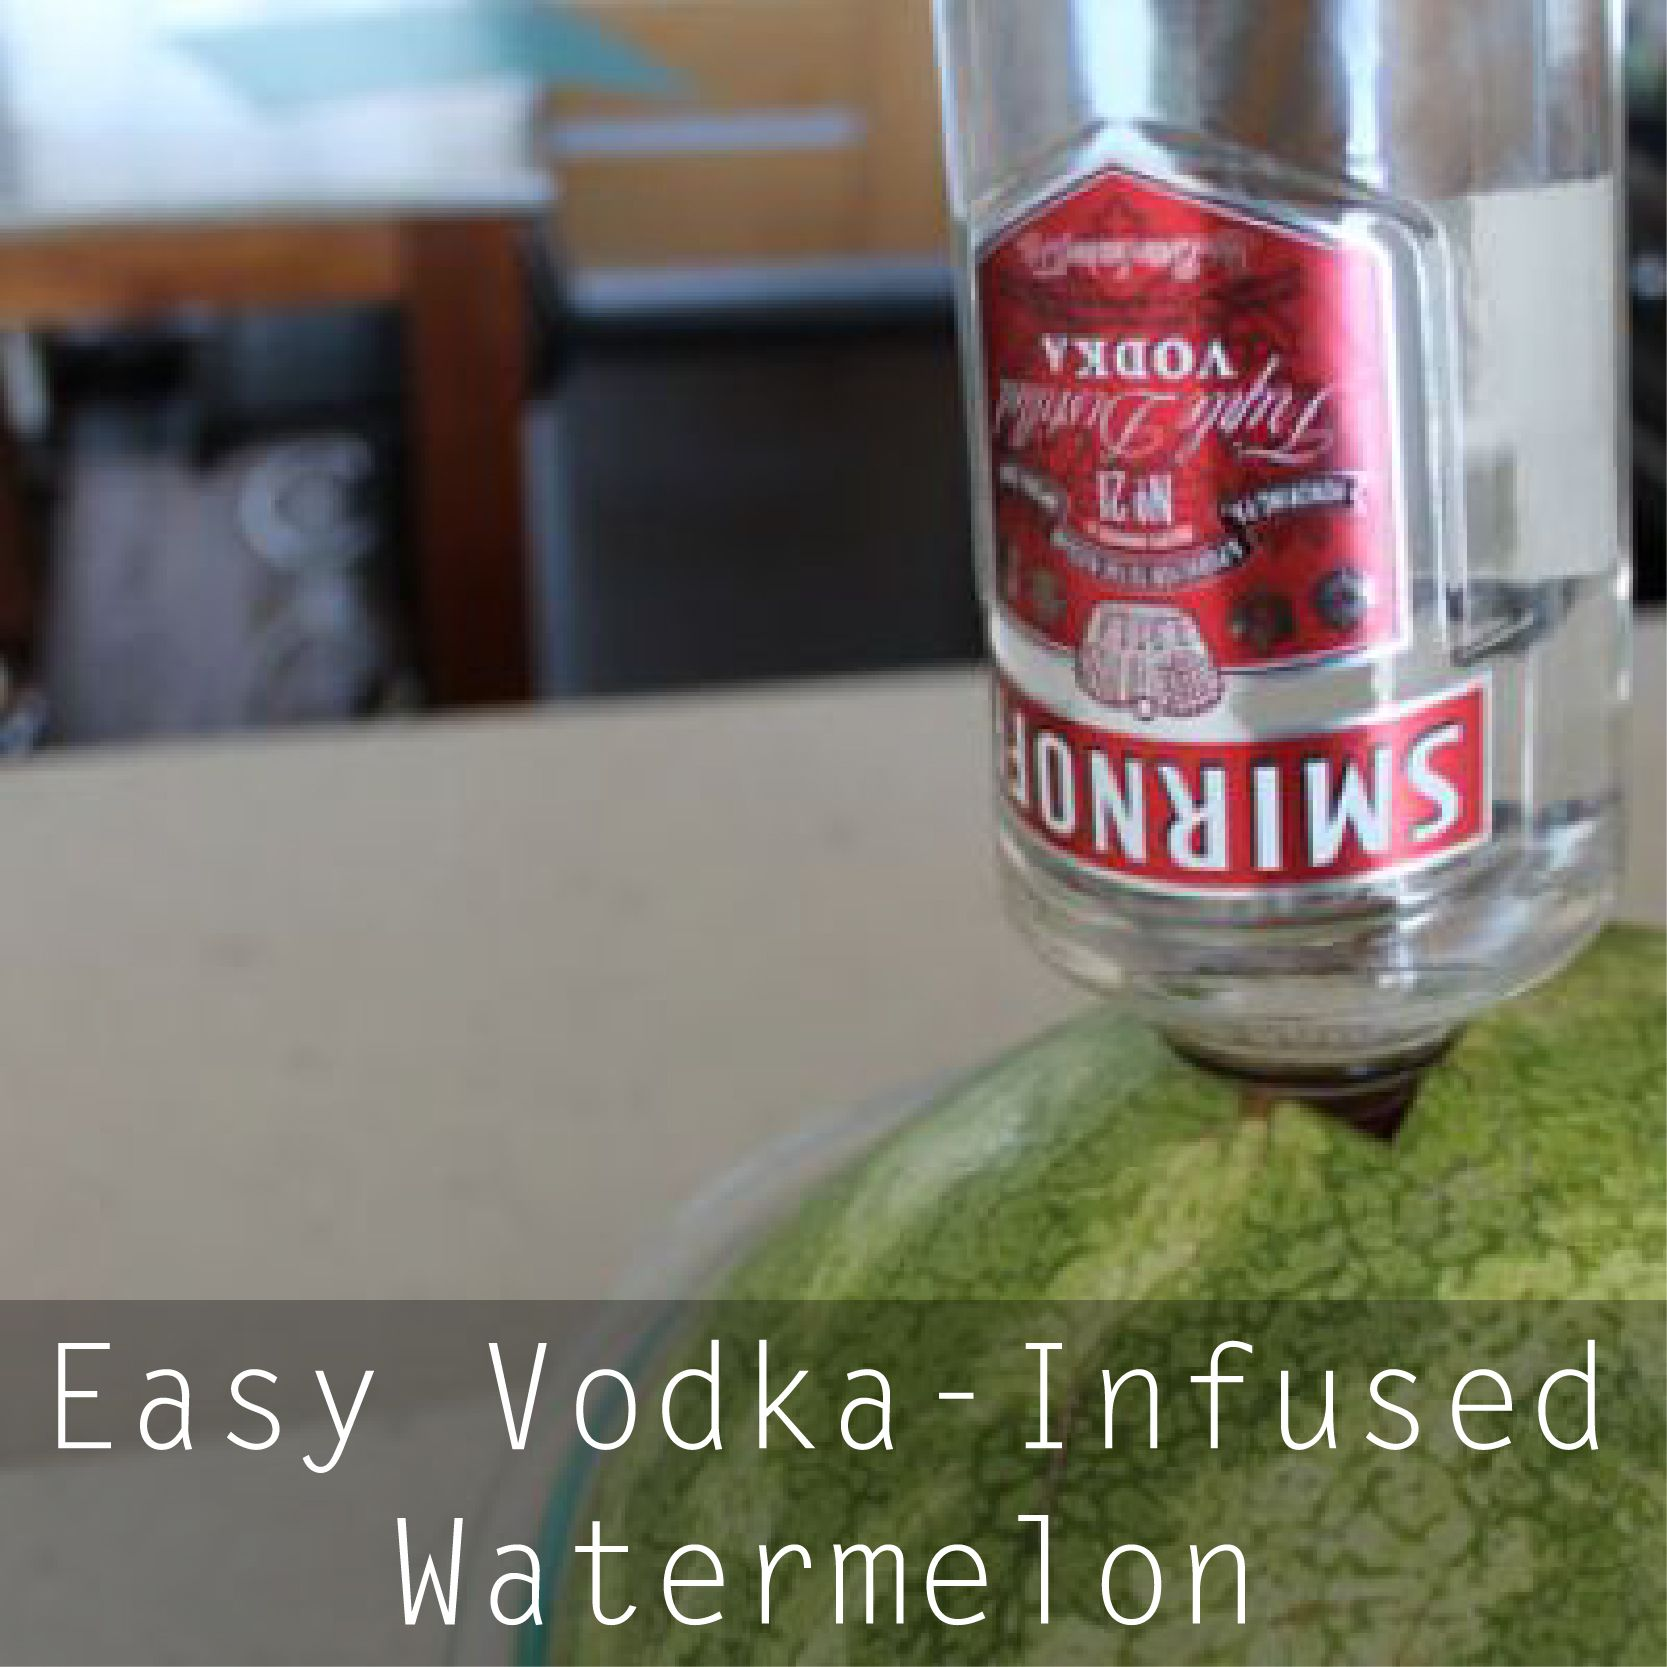 Easy Vodka-Infused Watermelon